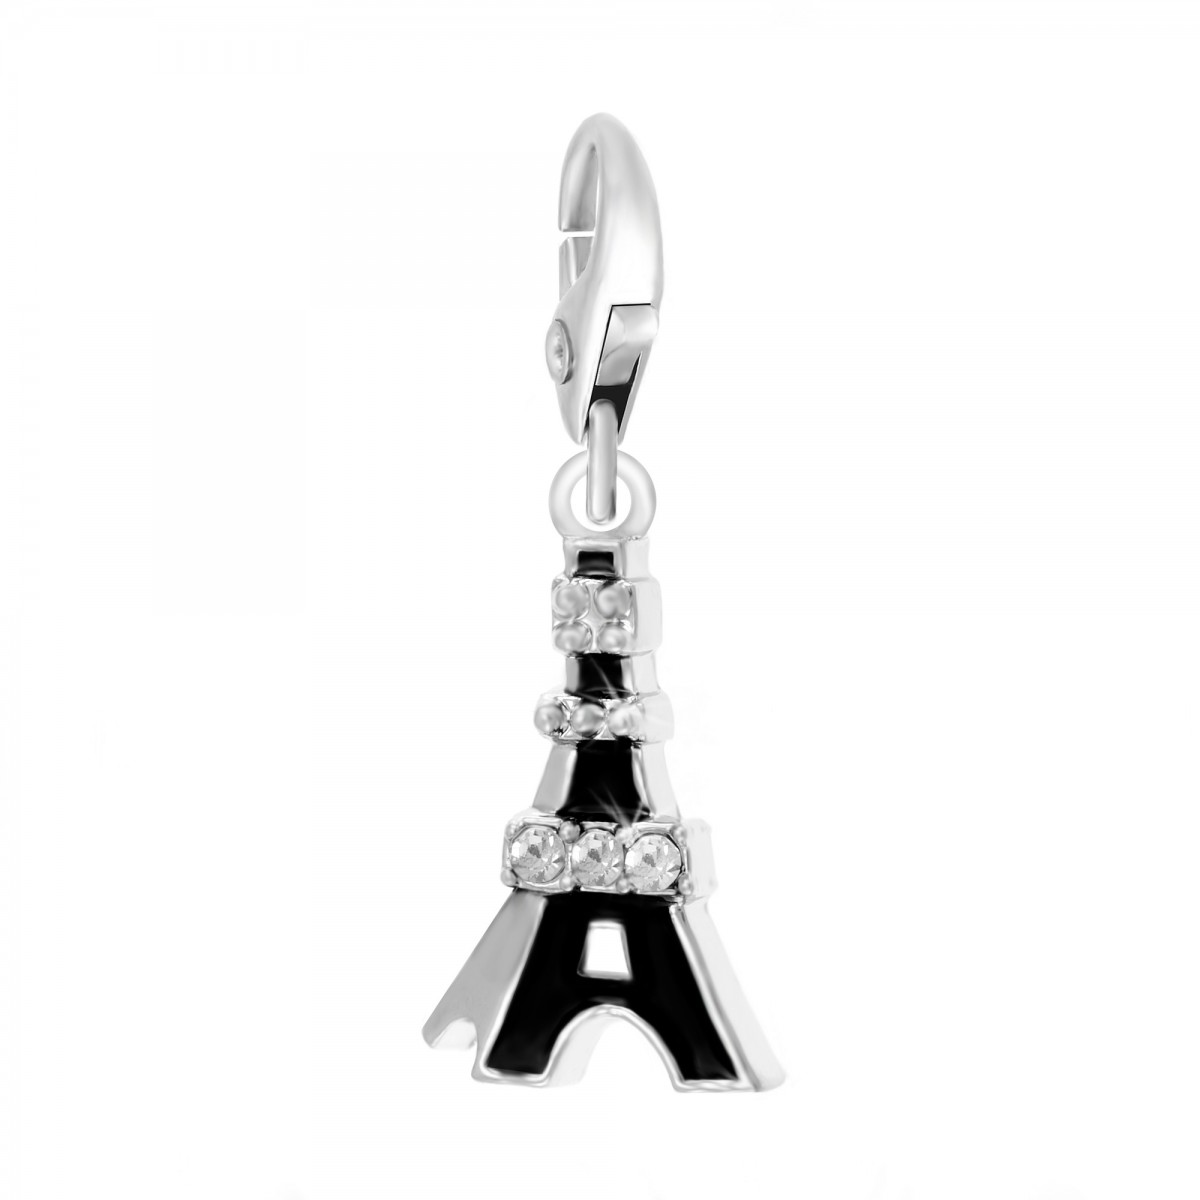 Charm Tour Eiffel noire So Charm made with Crystal from Swarovski